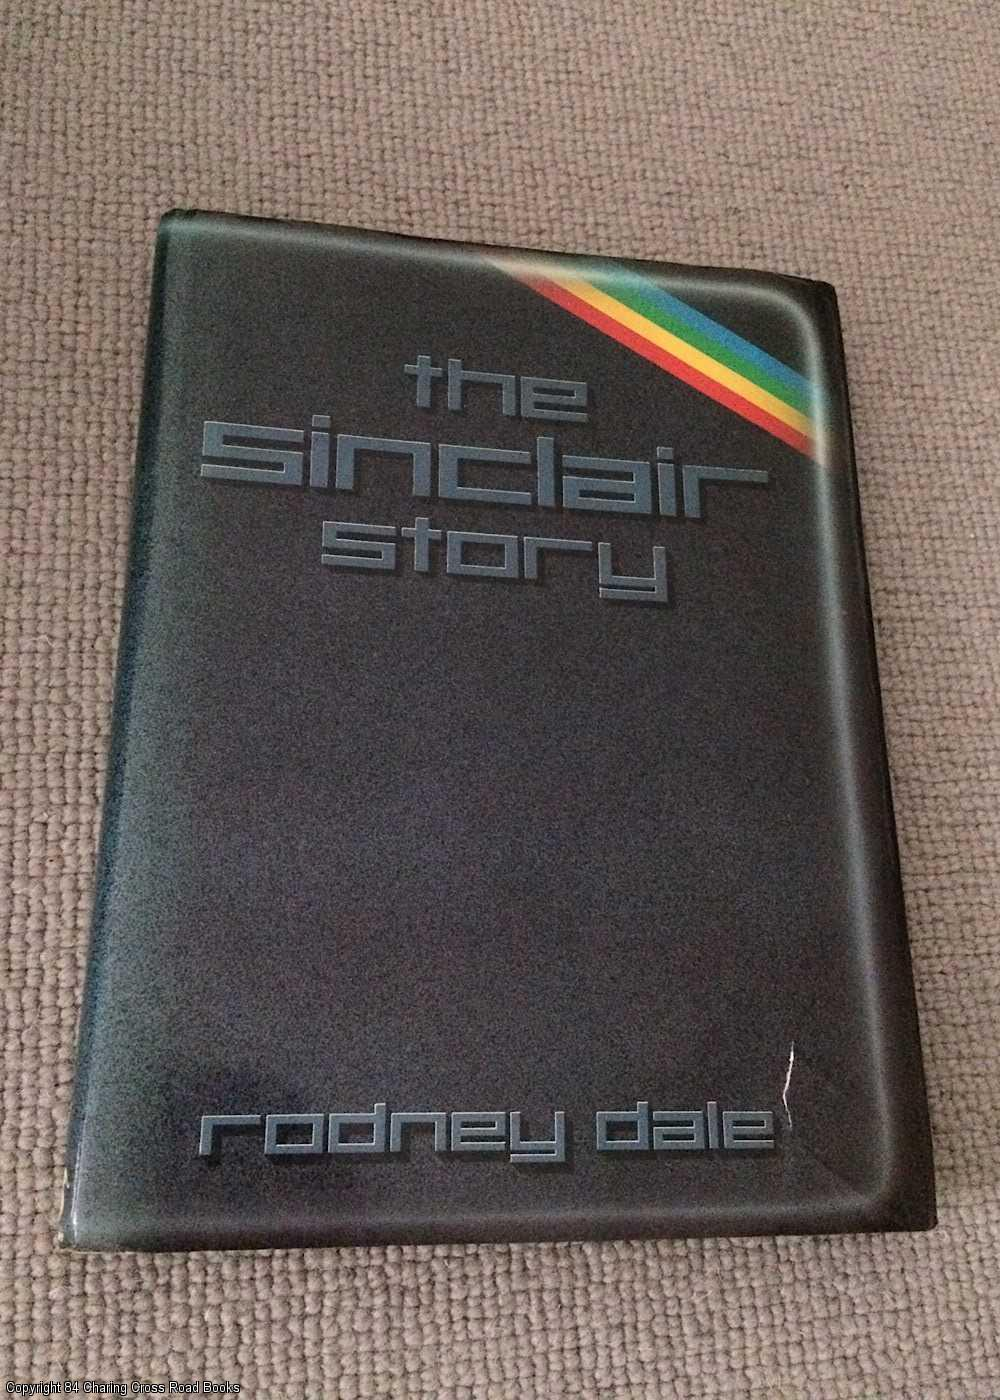 RODNEY DALE - The Sinclair Story